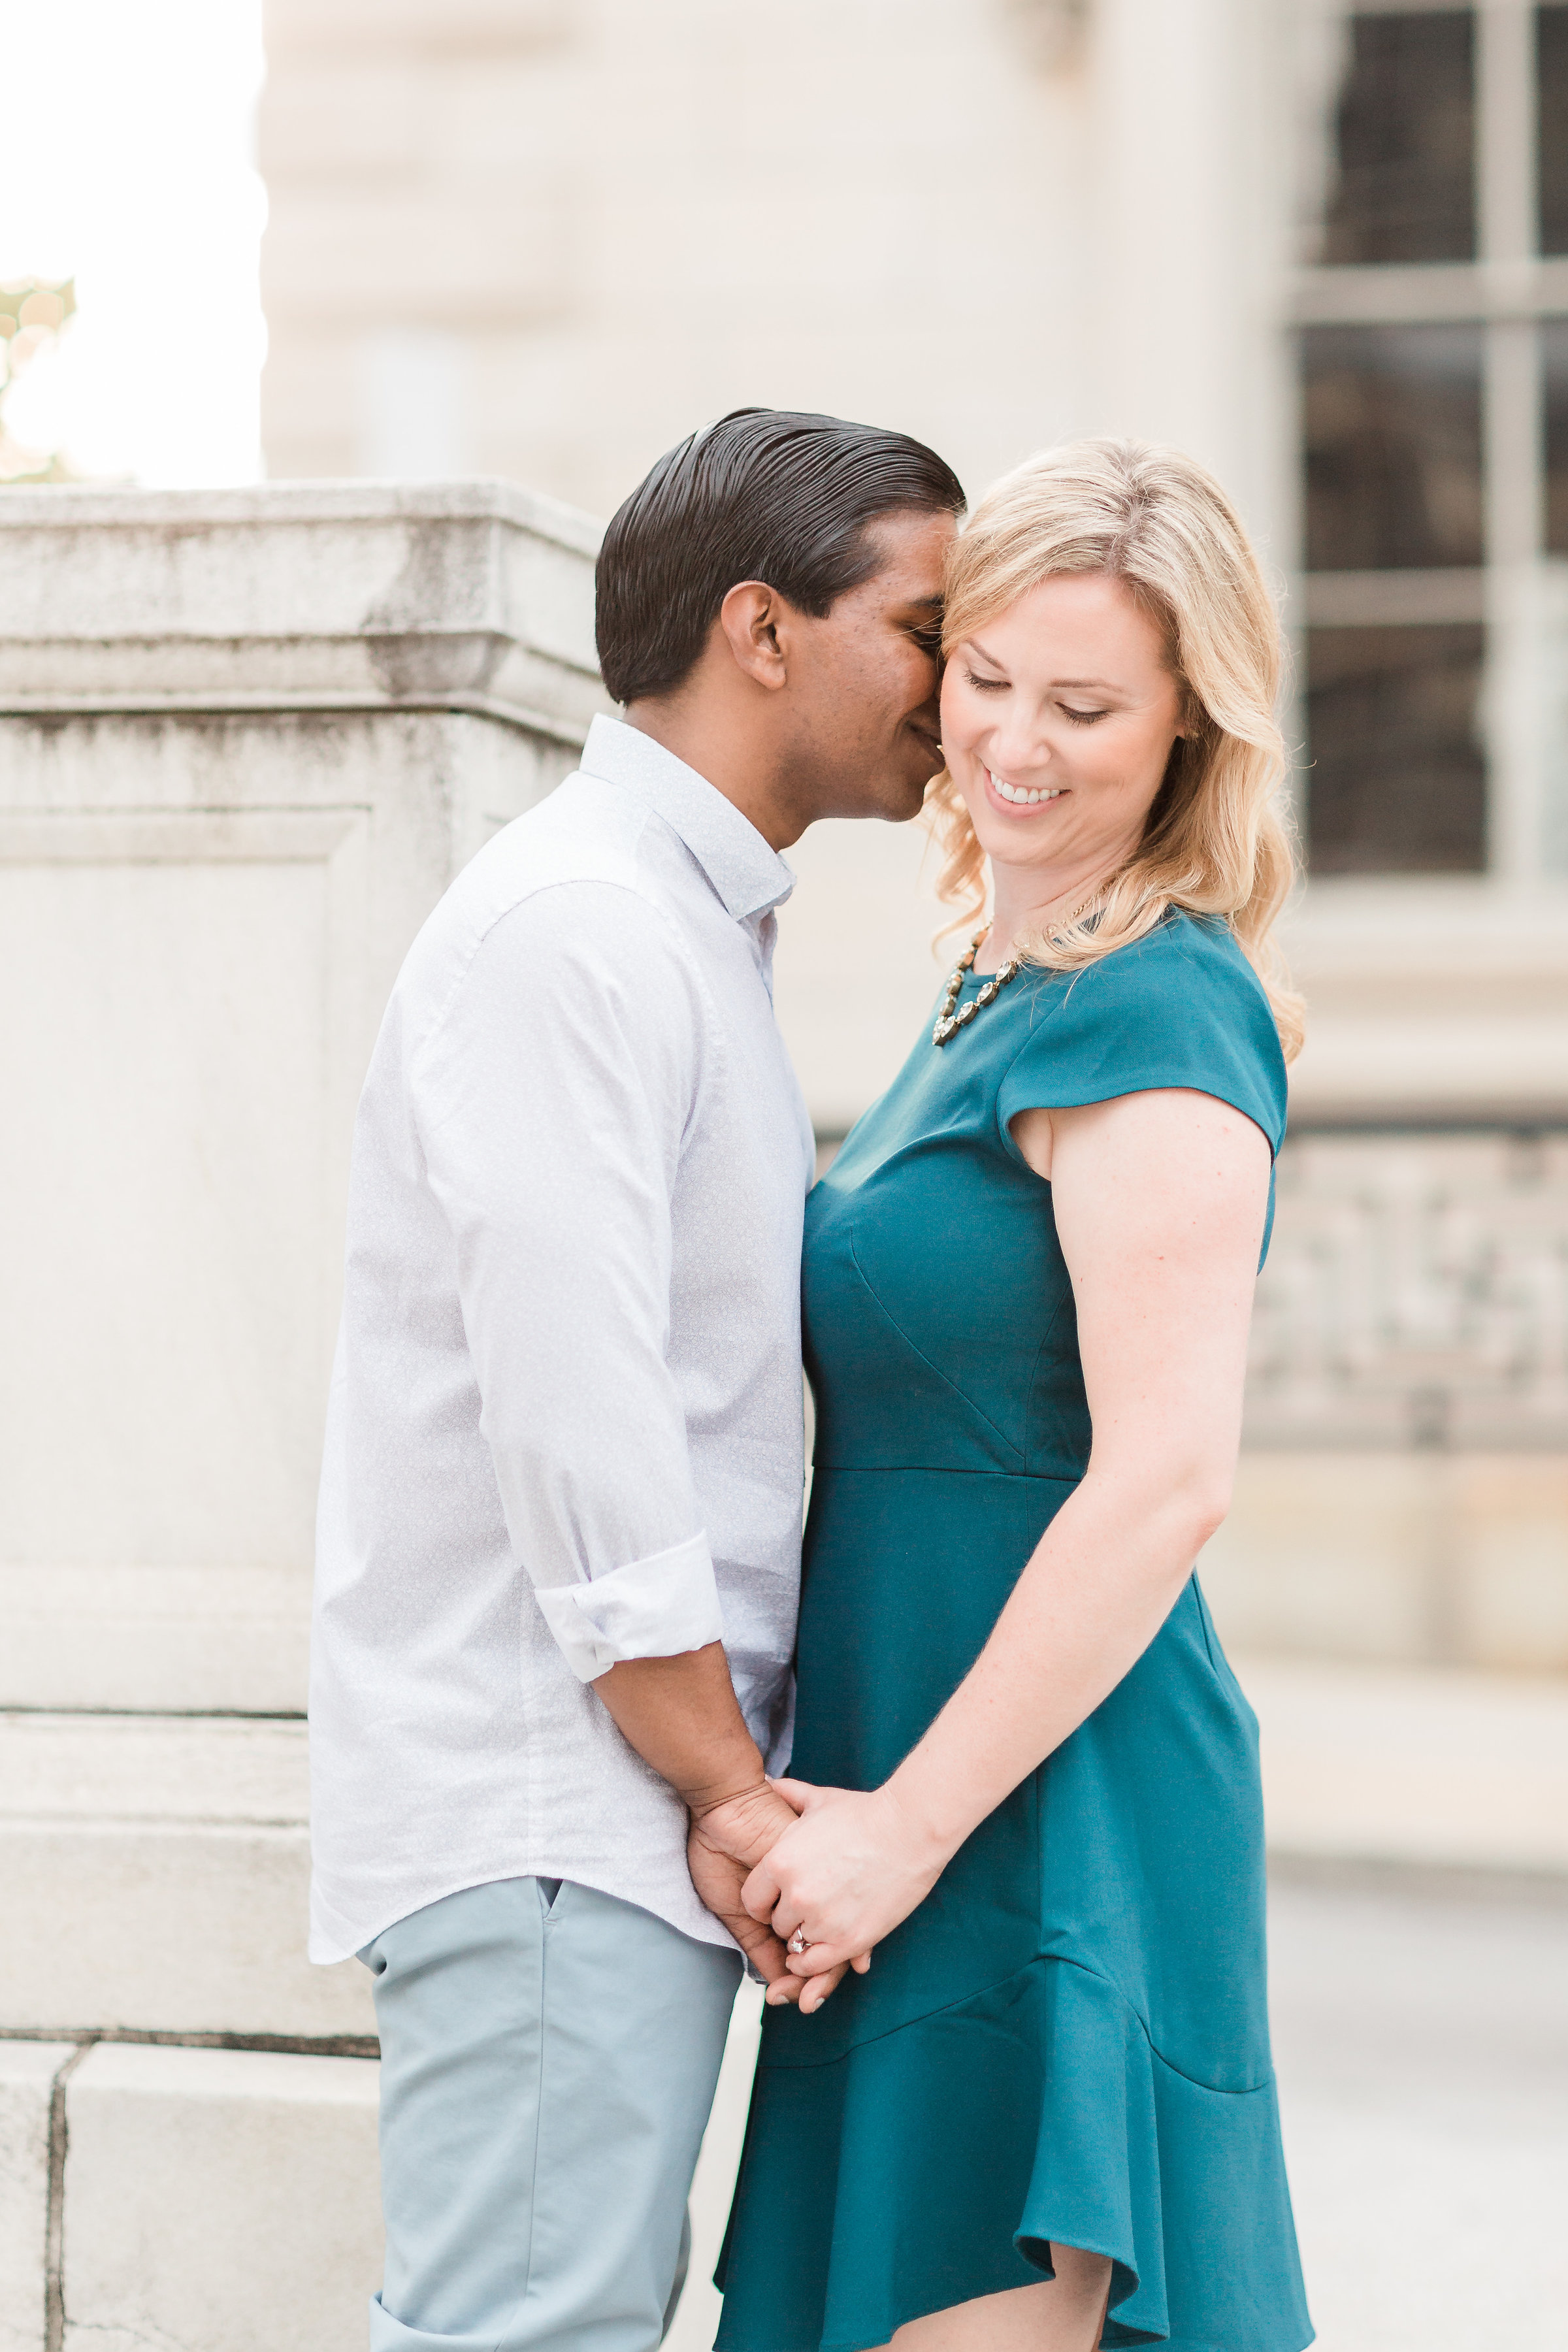 Downtown Baltimore Engagement Session with Alicia Lacey Photography-138.jpg